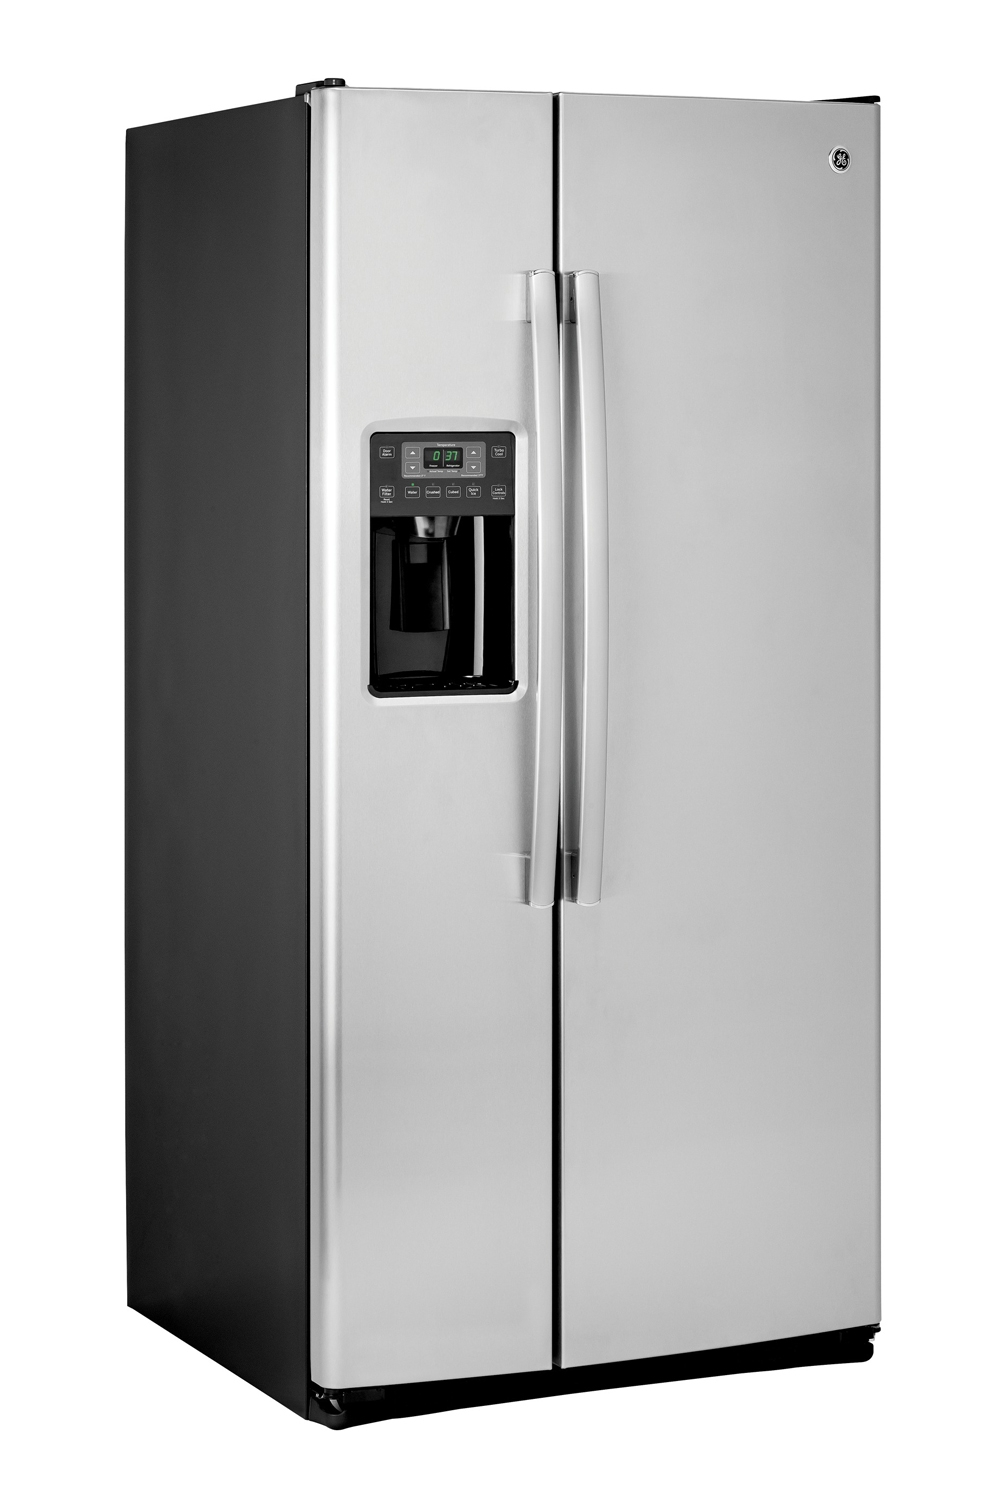 ge 23 2 cu ft side by side refrigerator gss23gskss. Black Bedroom Furniture Sets. Home Design Ideas